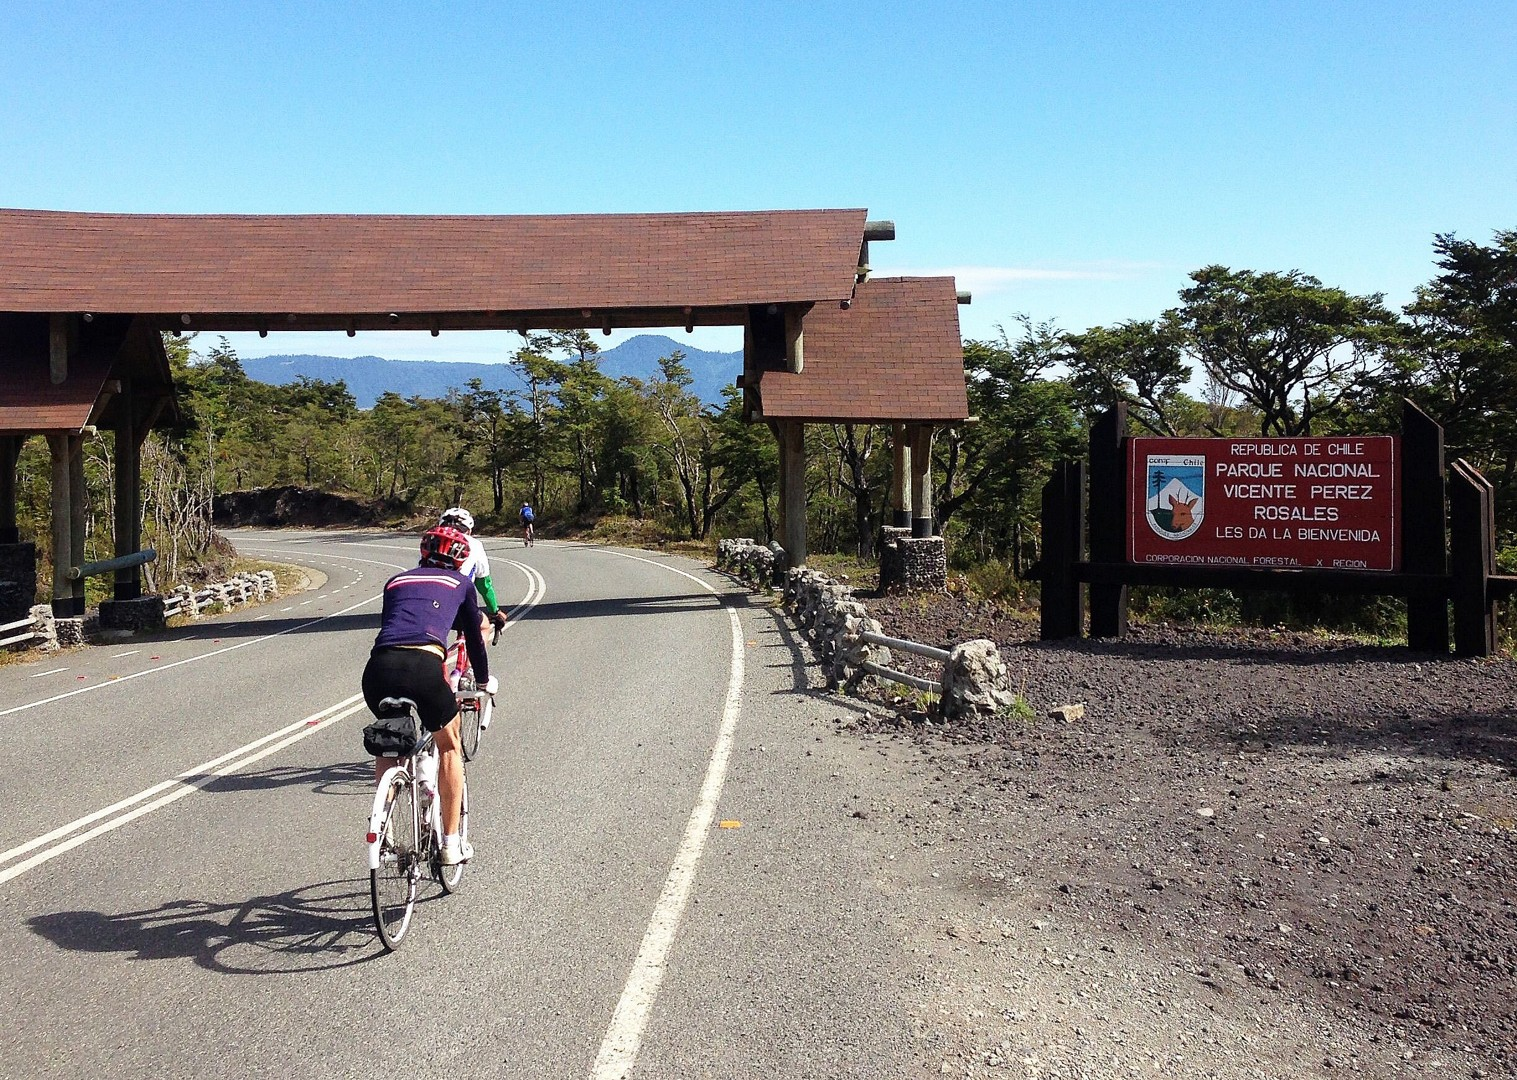 lake-district-explorer-chile-and-argentina-guided-road-cycling-holiday-las-raices-tunnel.jpg - Chile and Argentina - Lake District Road Explorer - Road Cycling